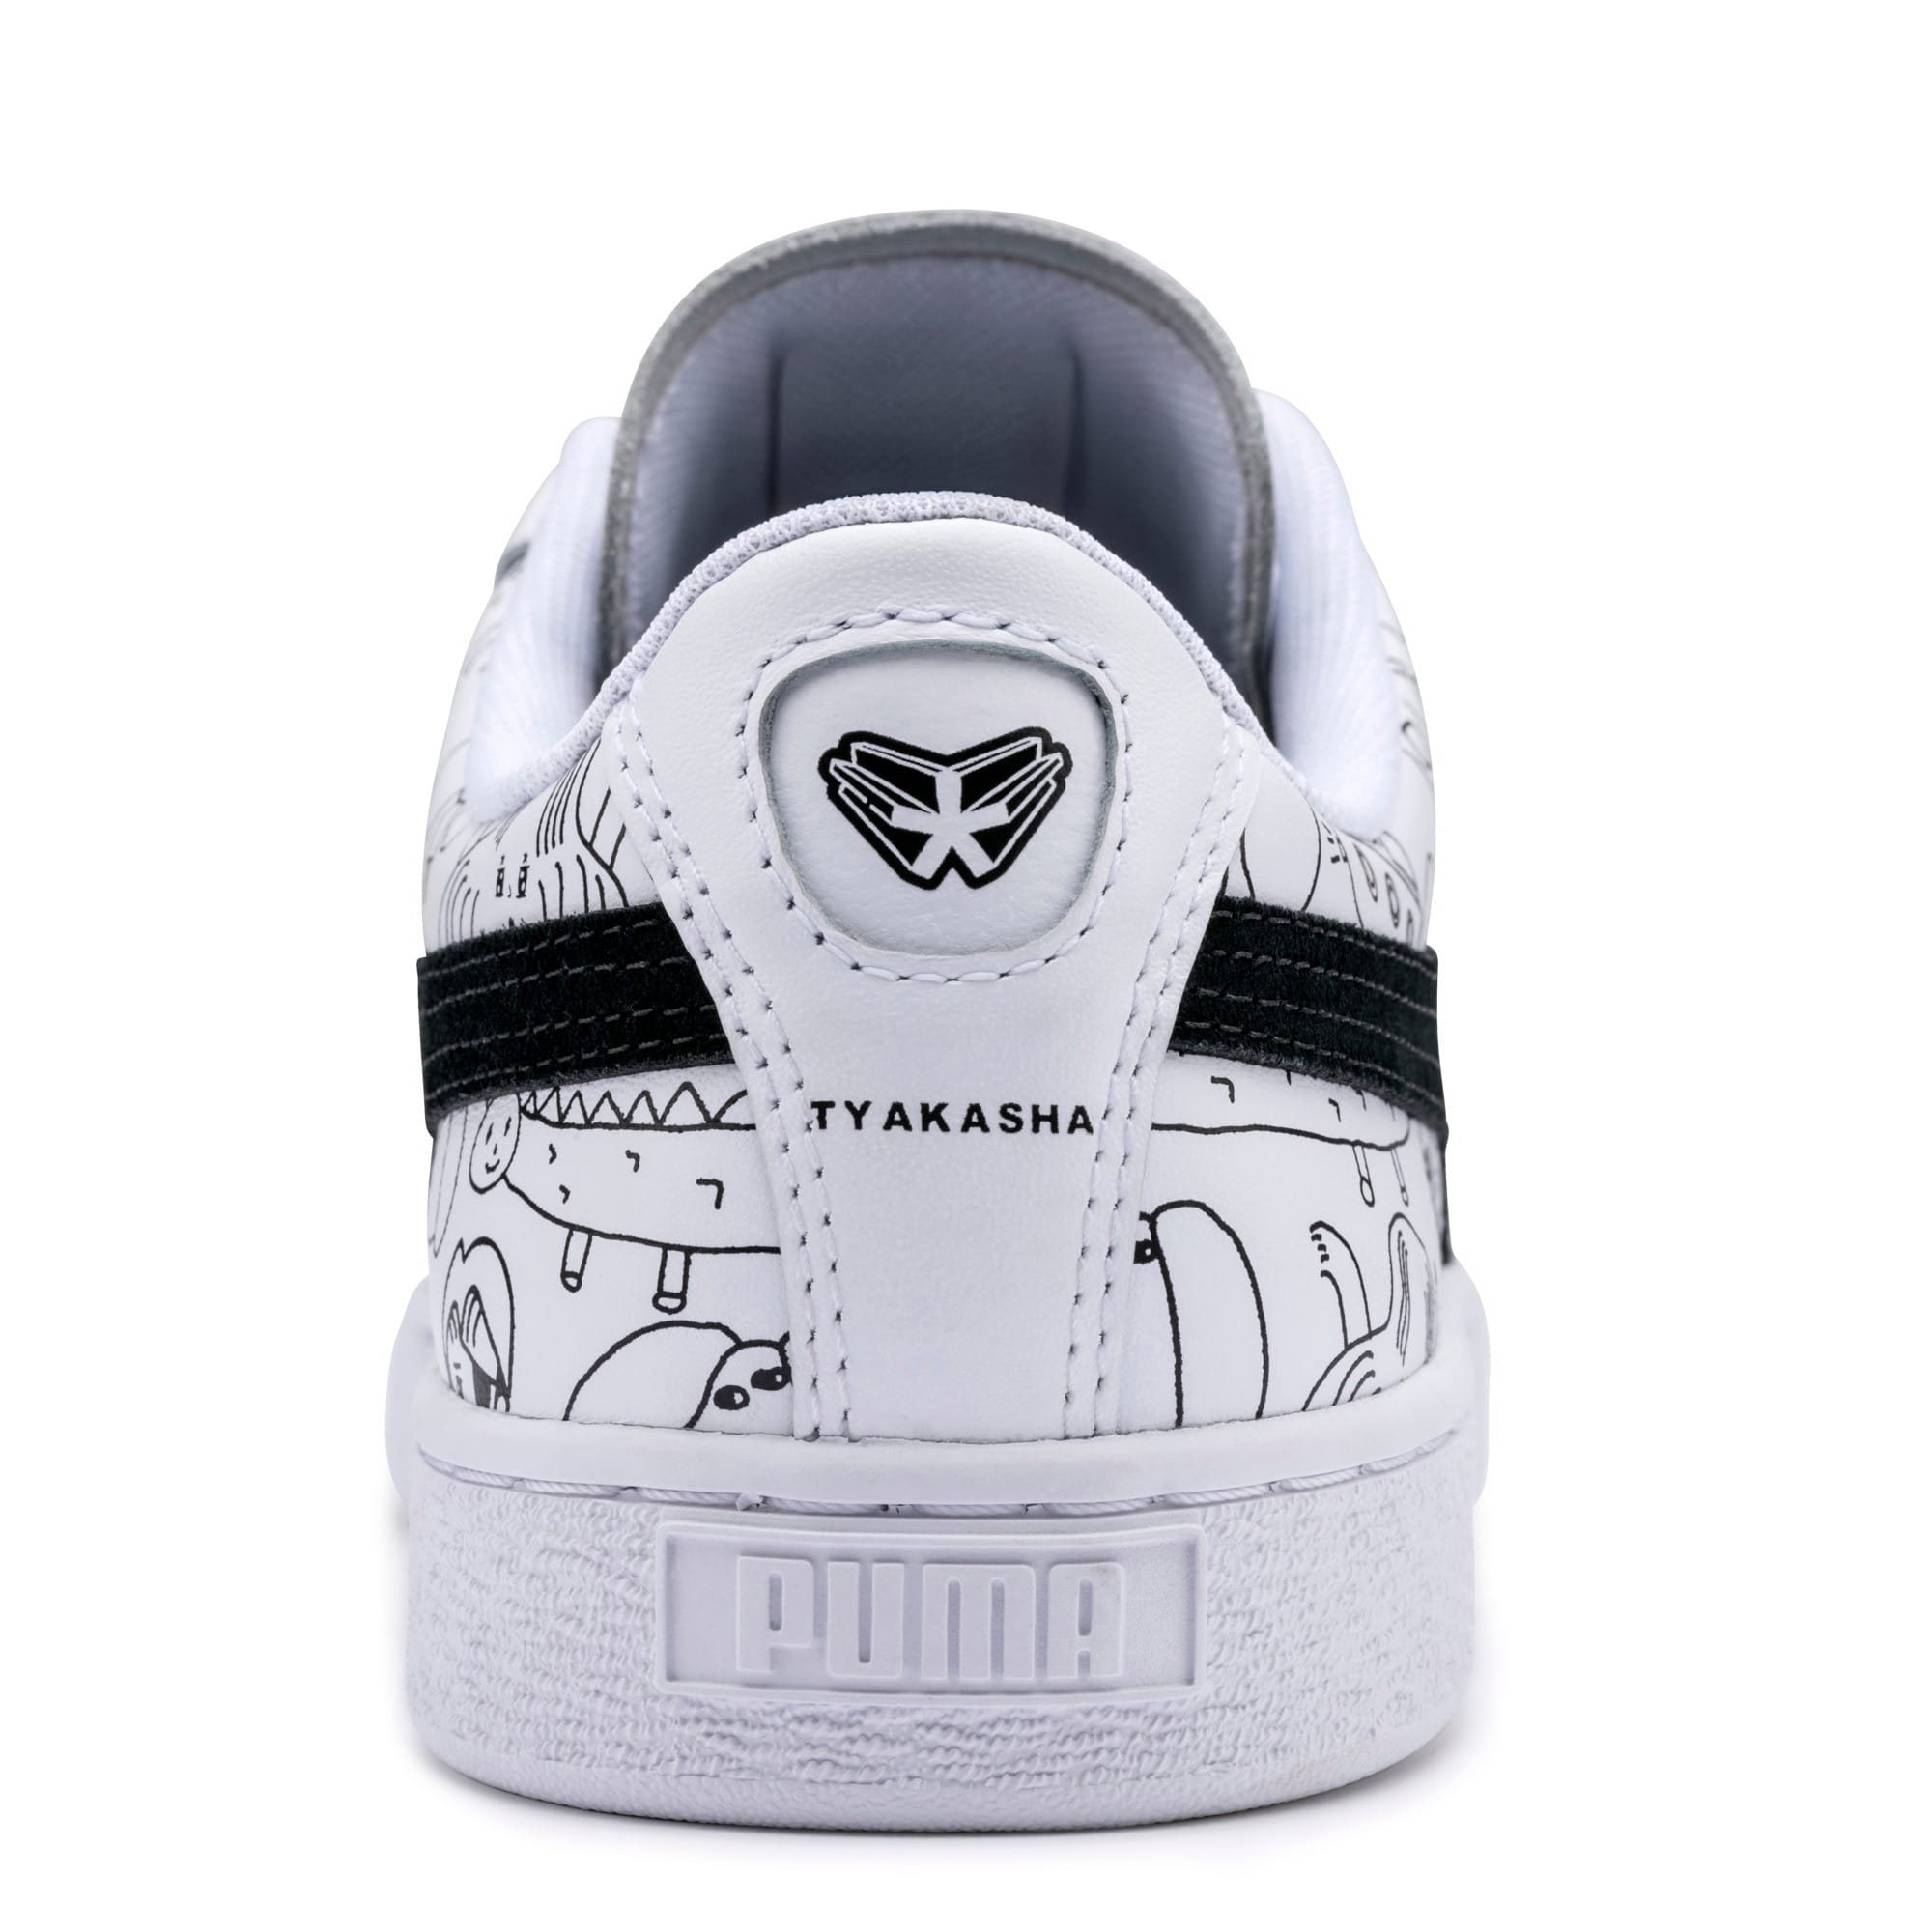 Thumbnail 8 of PUMA x TYAKASHA バスケット スニーカー, Puma White-Puma Black, medium-JPN